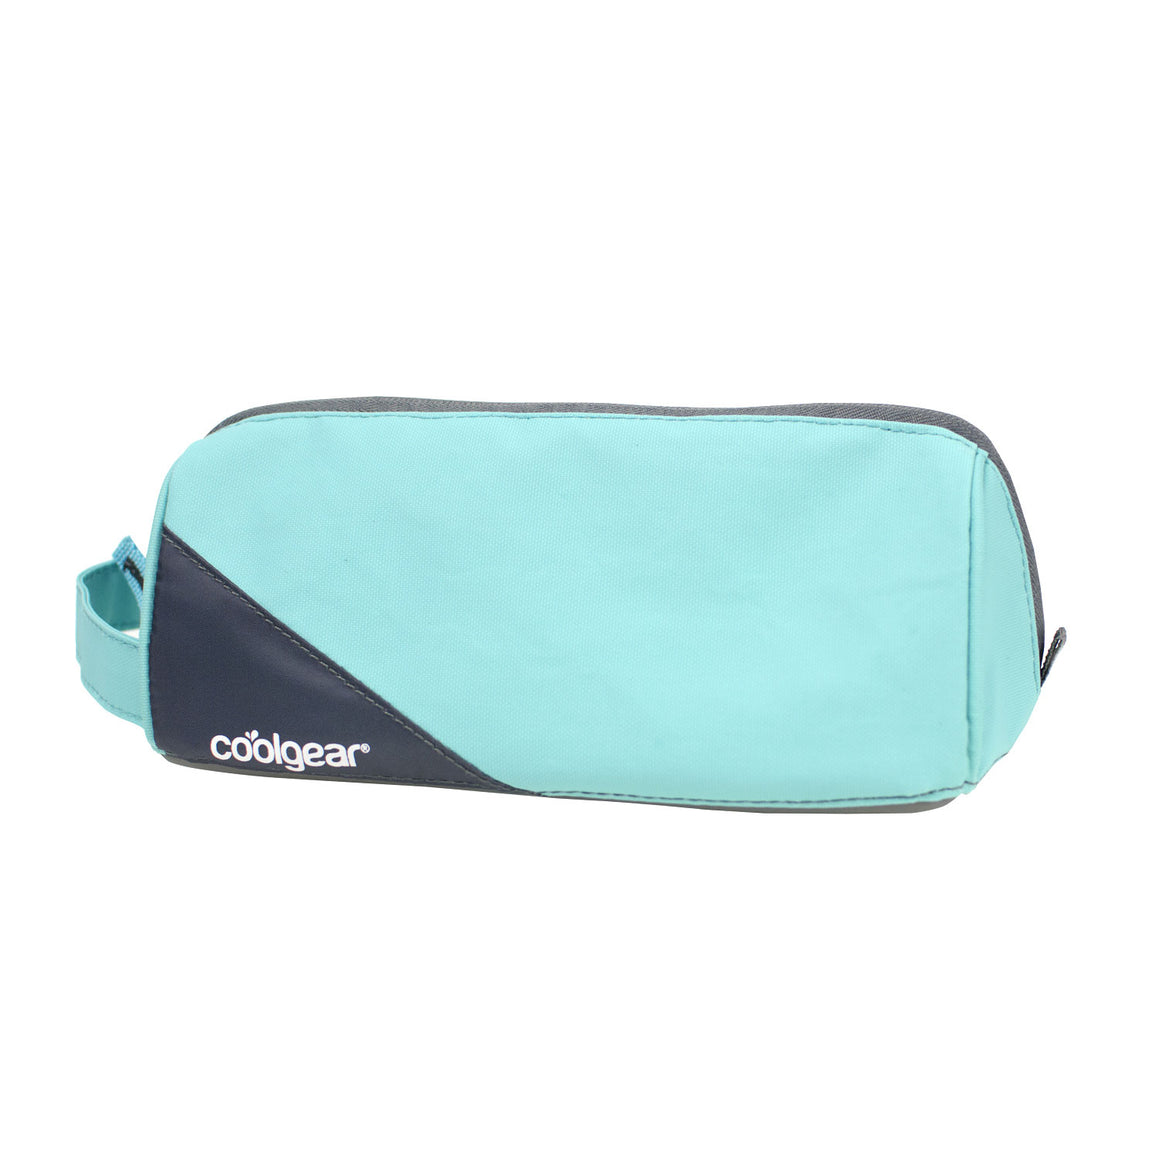 Smoke Triangle Travel Bag at Cool Gear Travel Bags